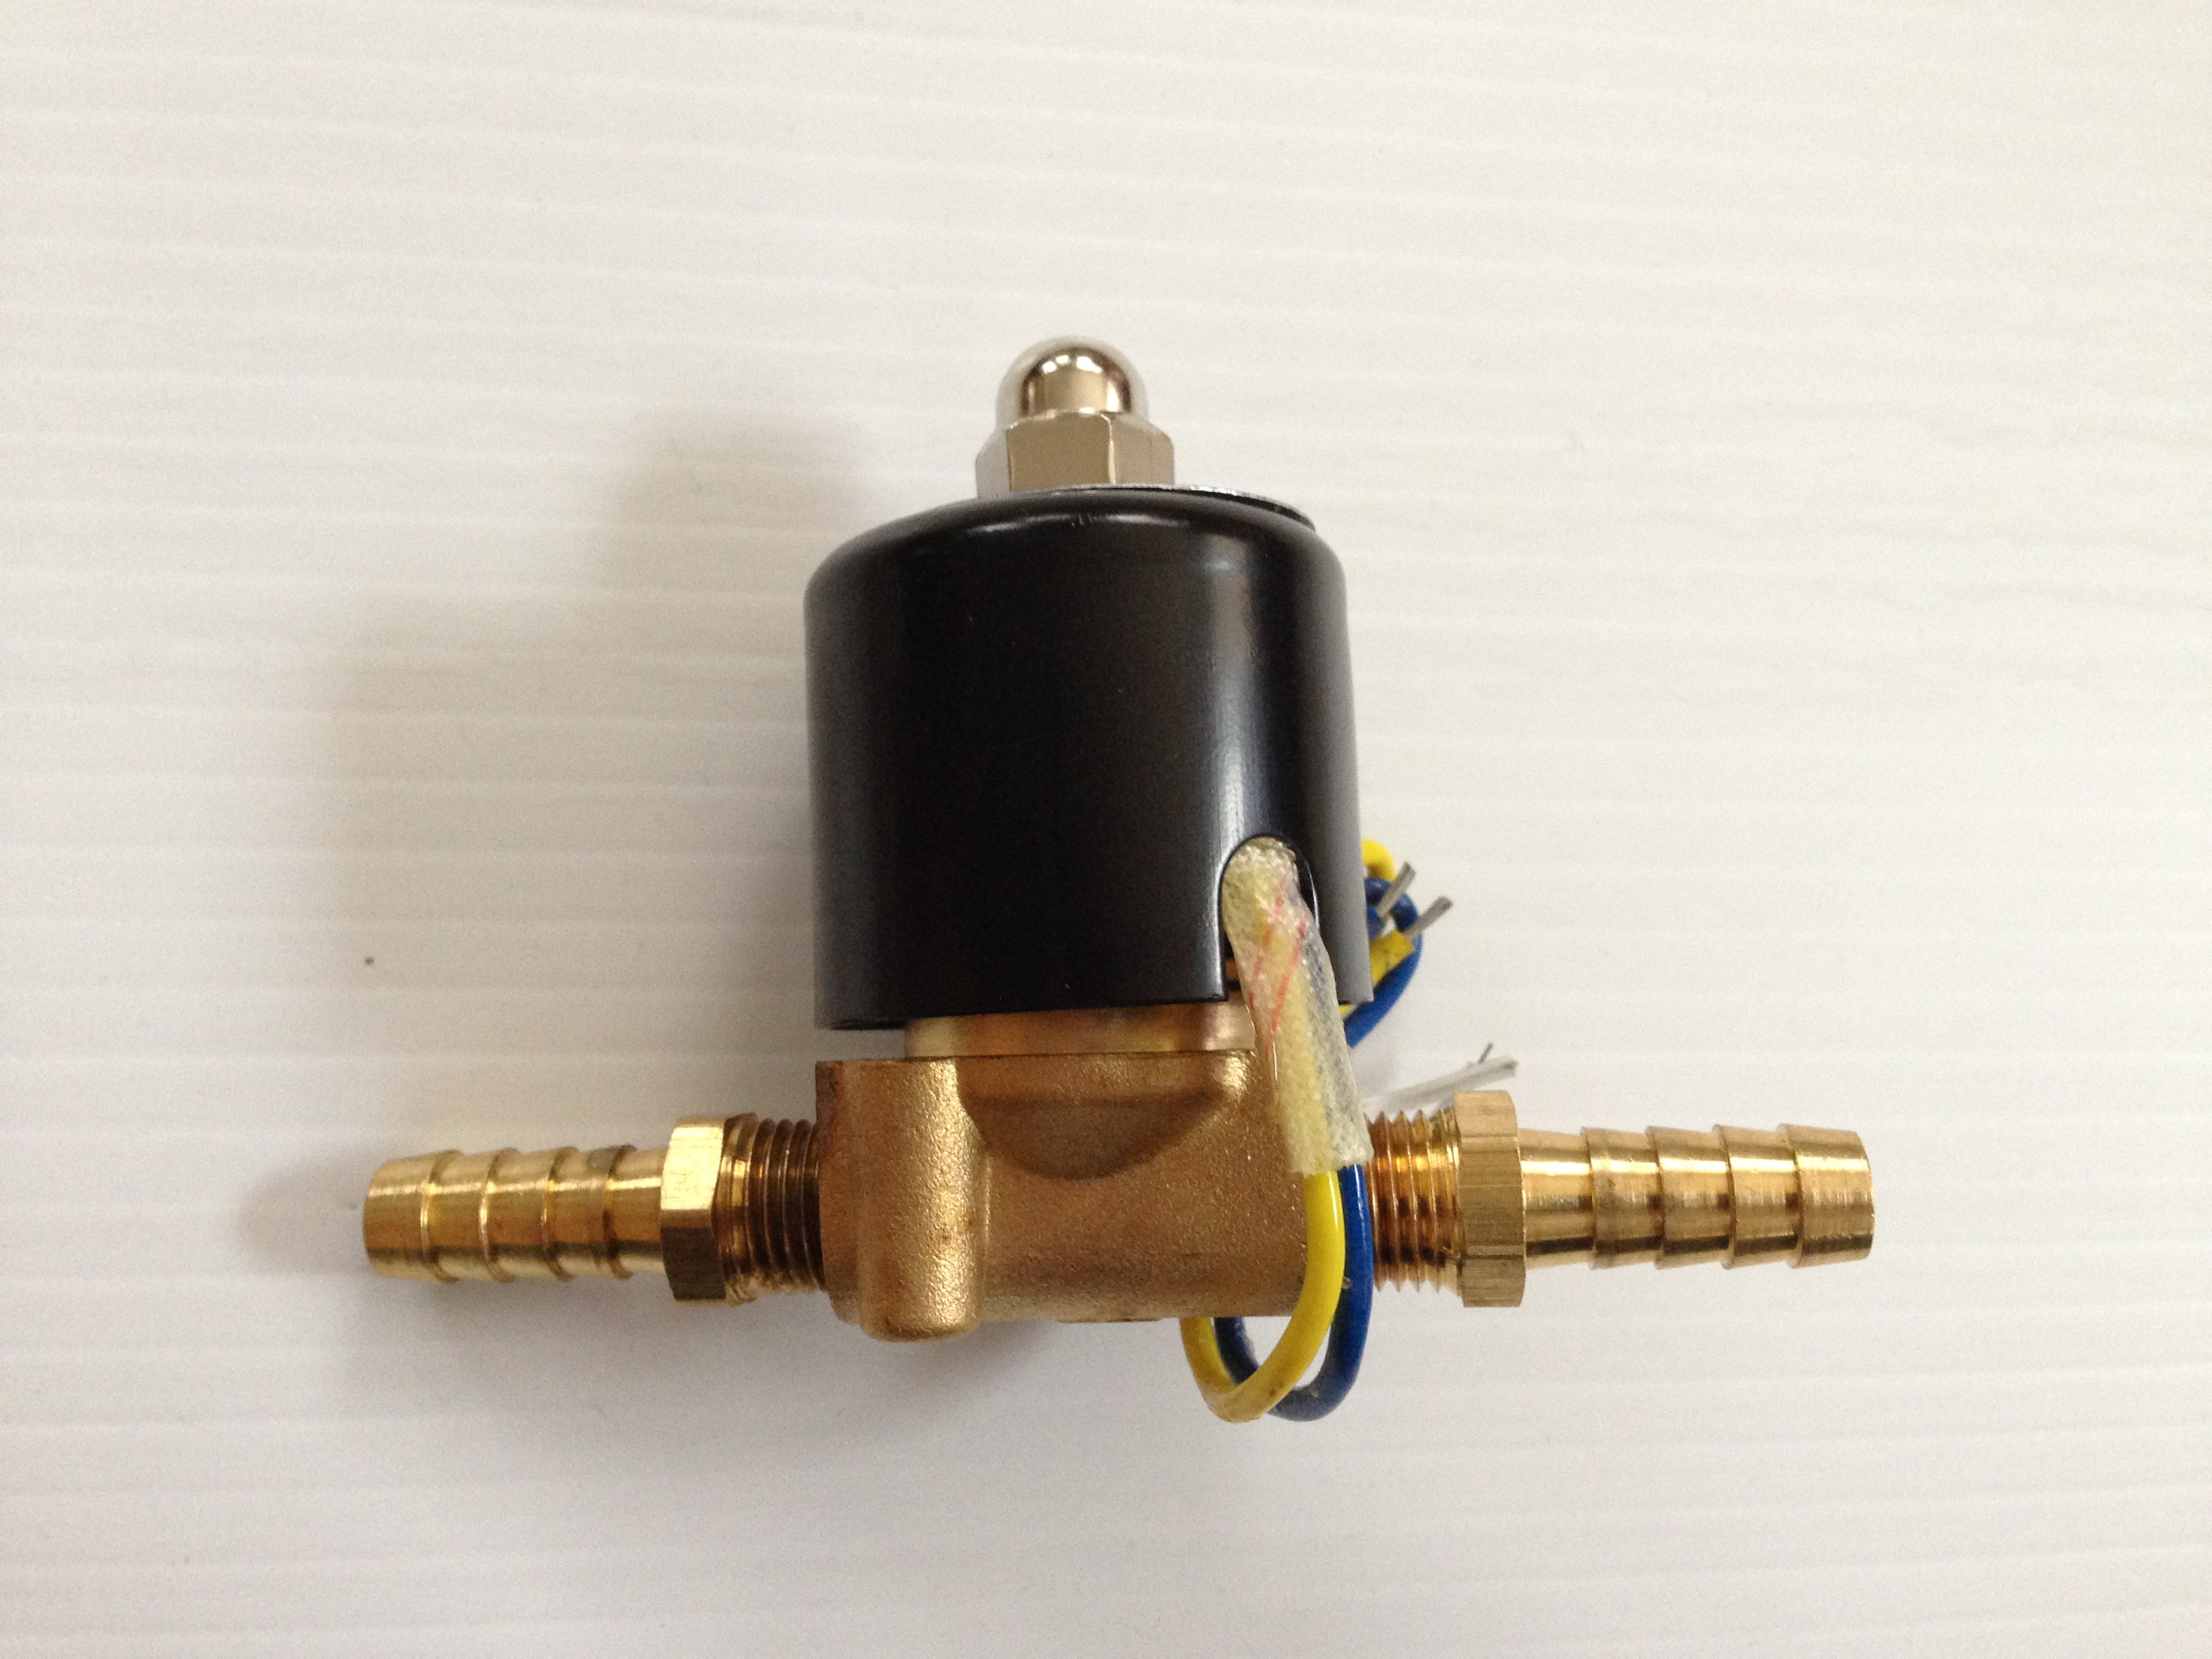 Shut off solenoid 12 volts